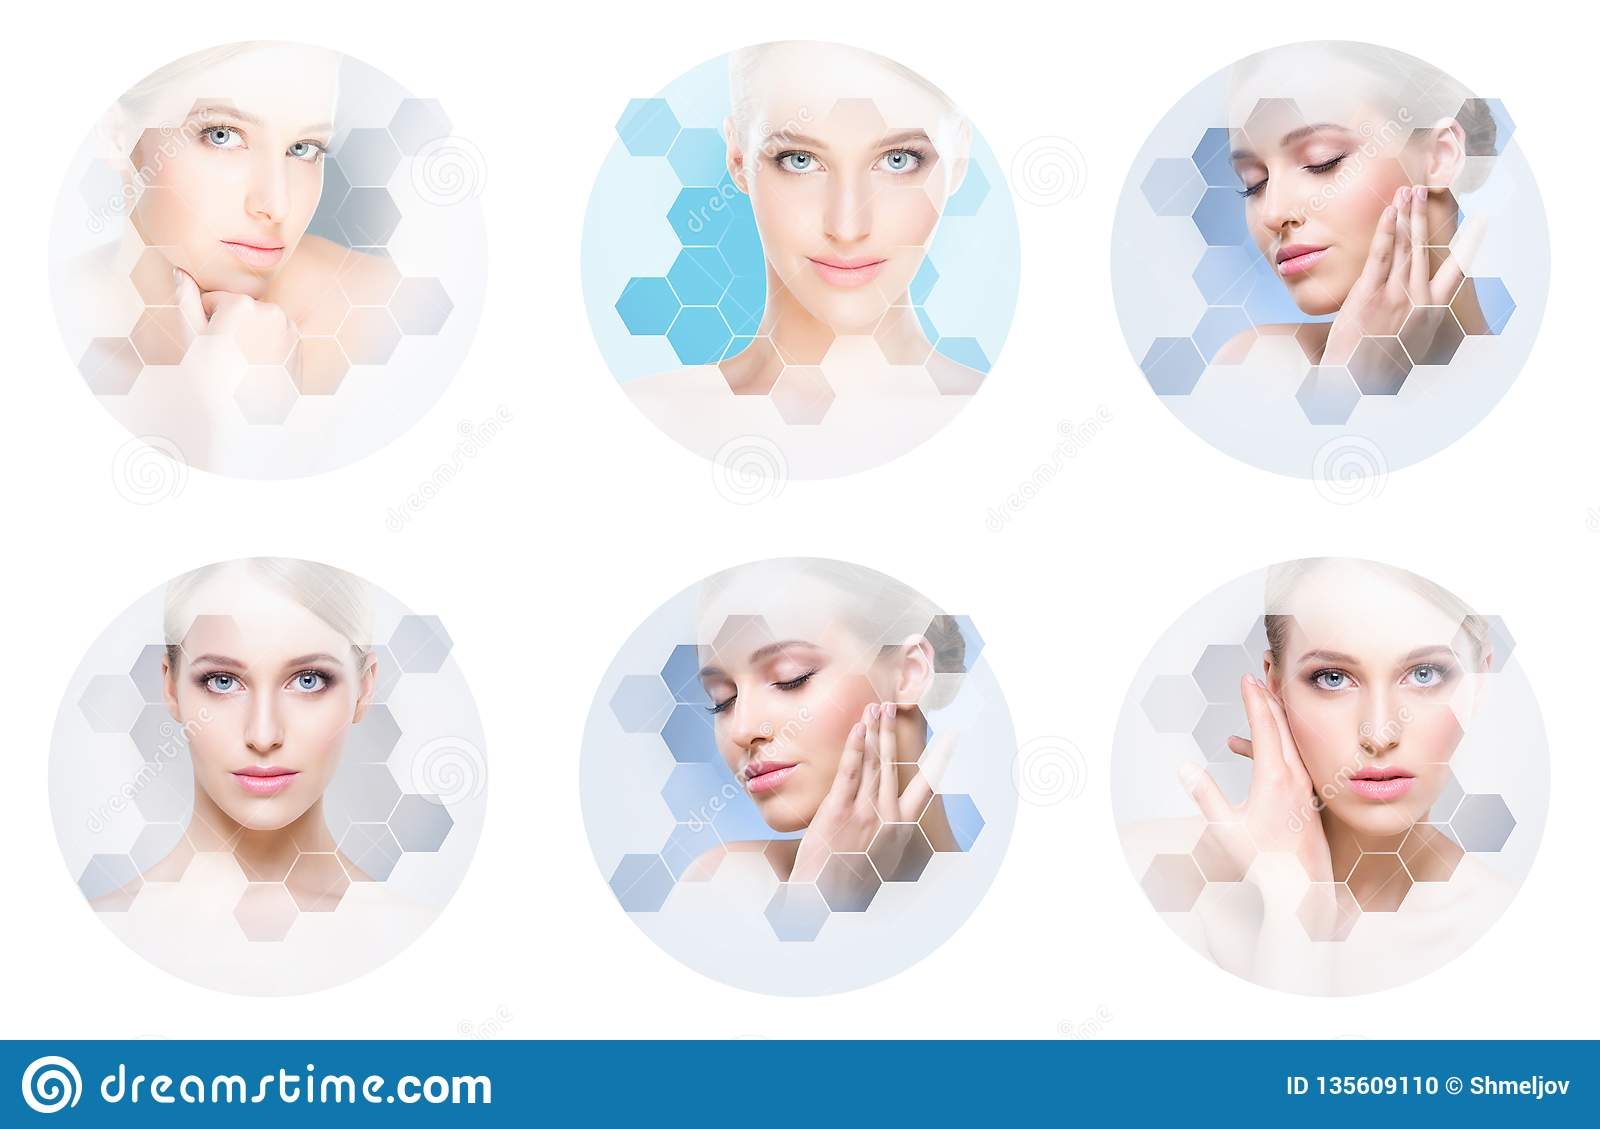 Beautiful face of young and healthy girl in collage. Plastic surgery, skin care, cosmetics and face lifting concept.